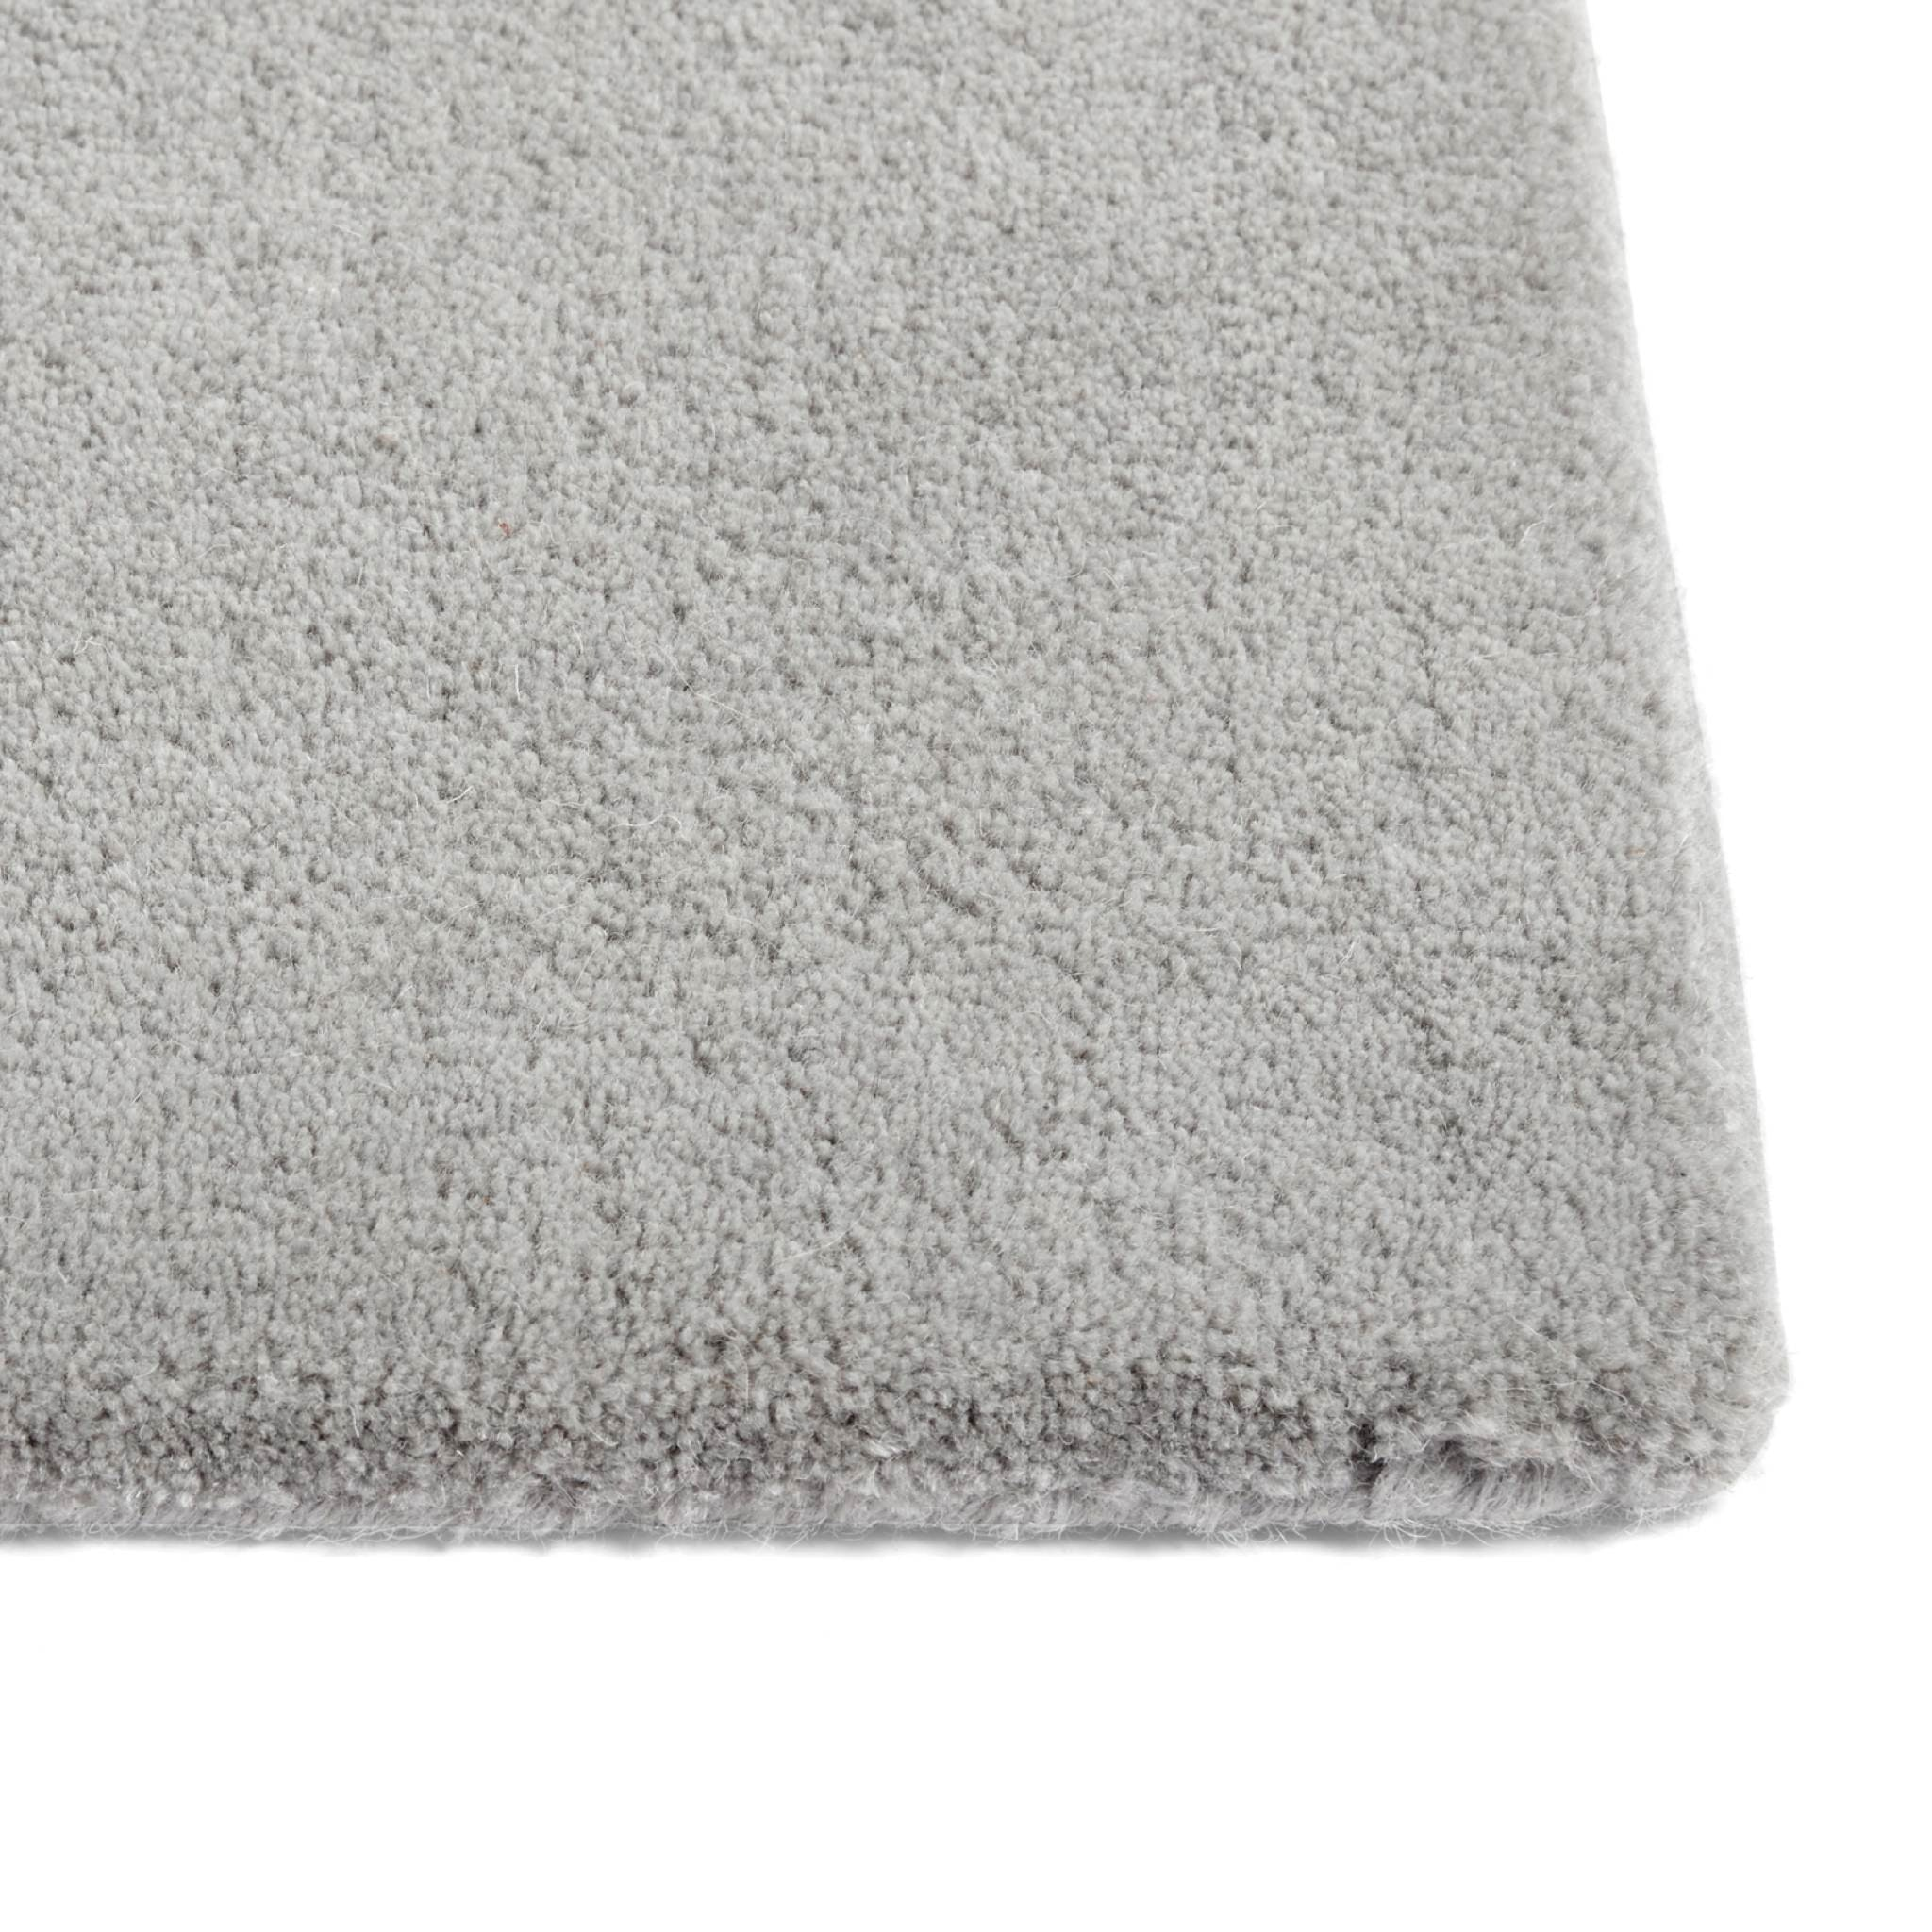 Raw Rug No2 by Hay